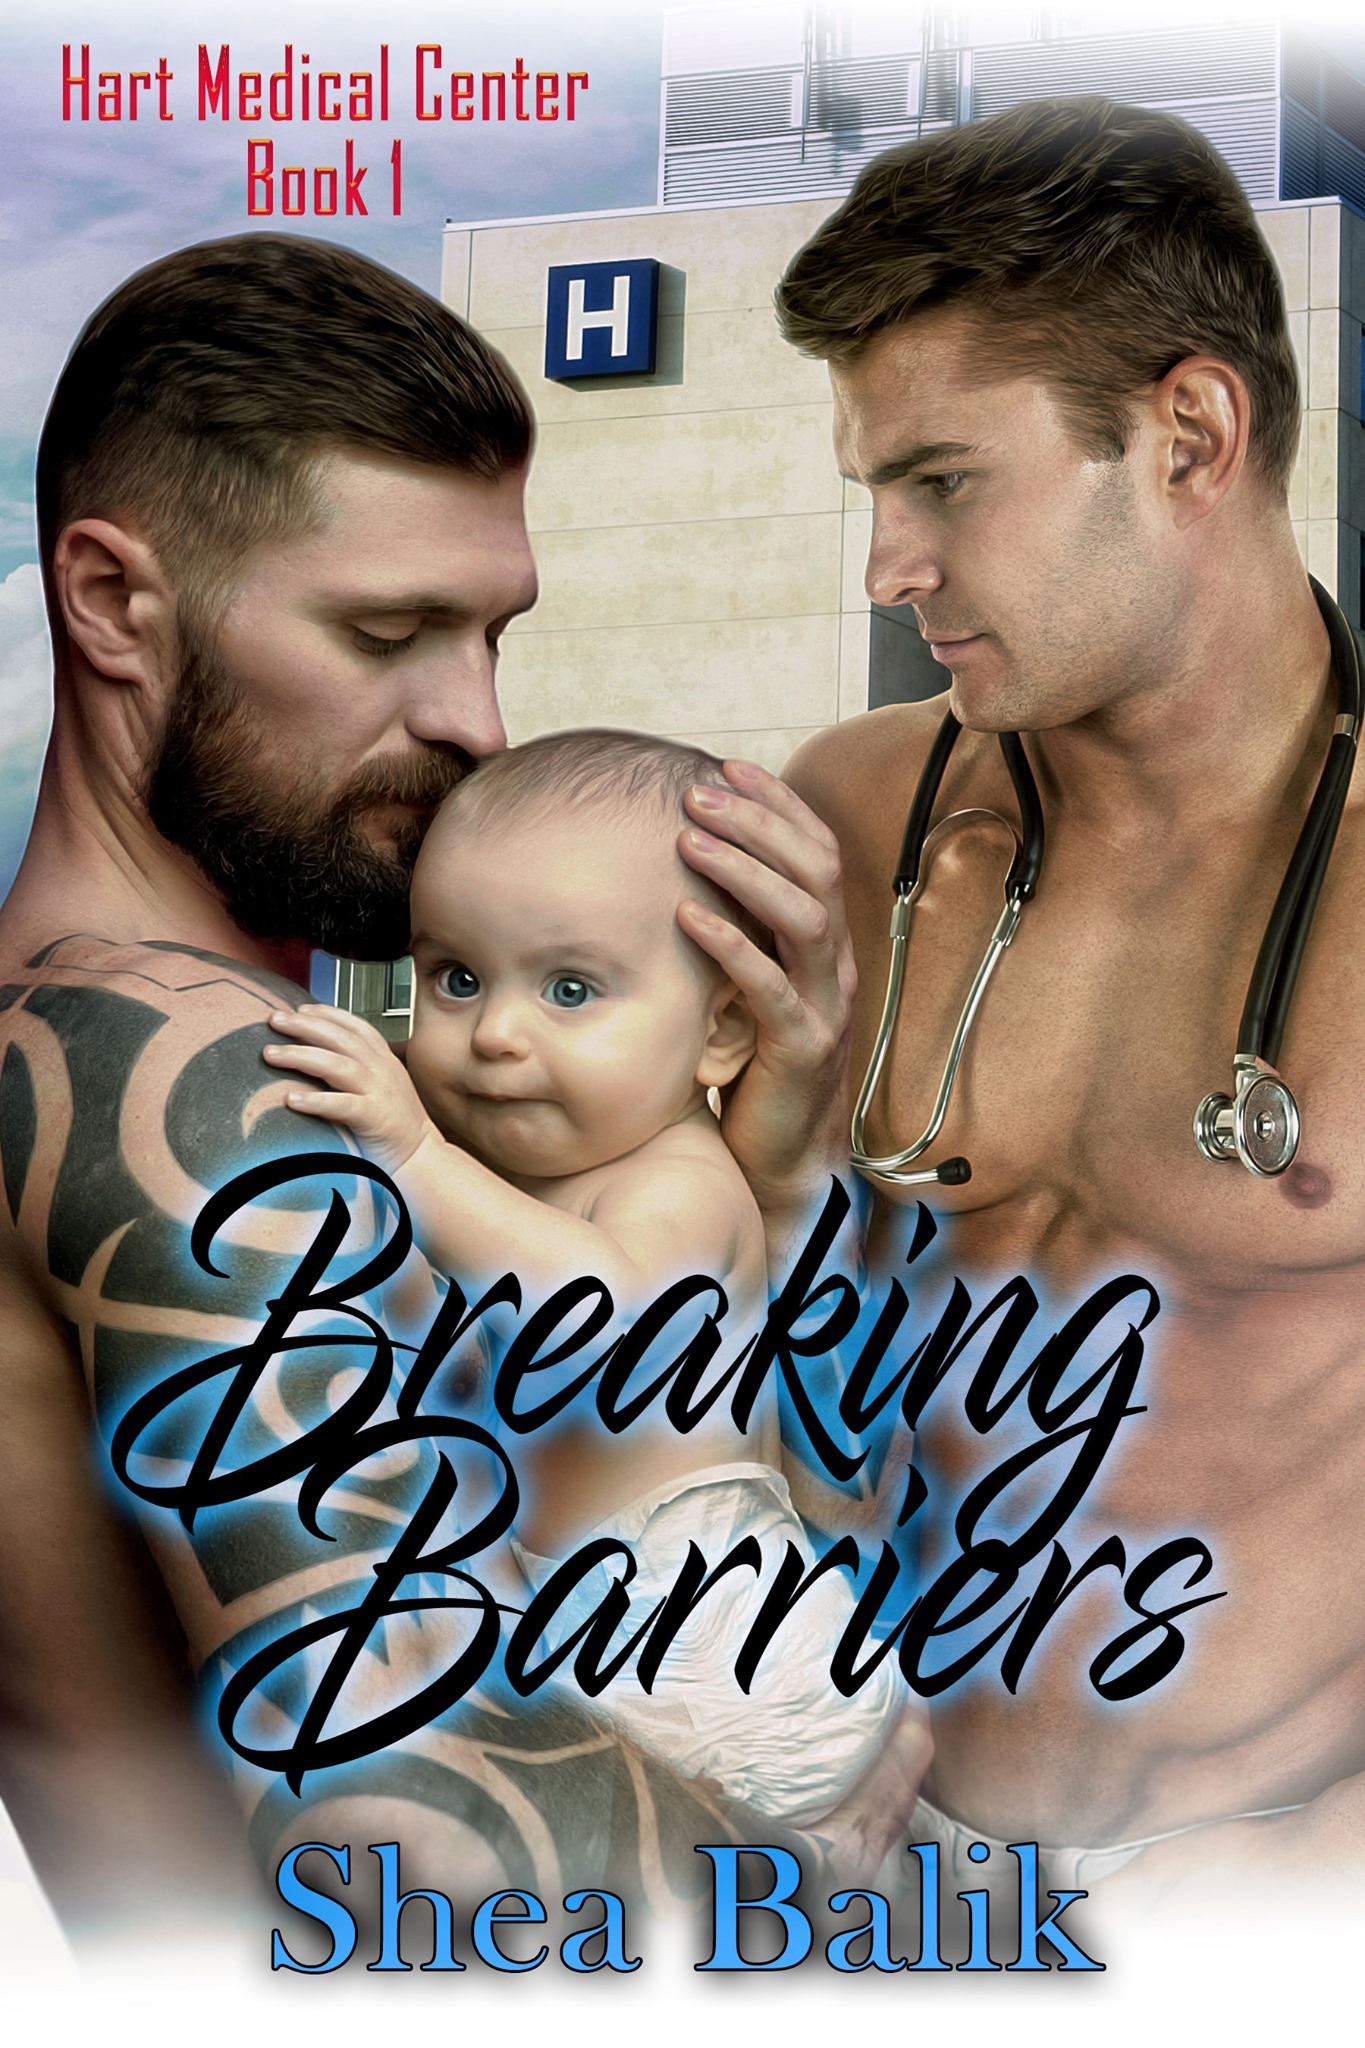 Guest Post and Giveaway: Breaking Barriers by Shea Balik